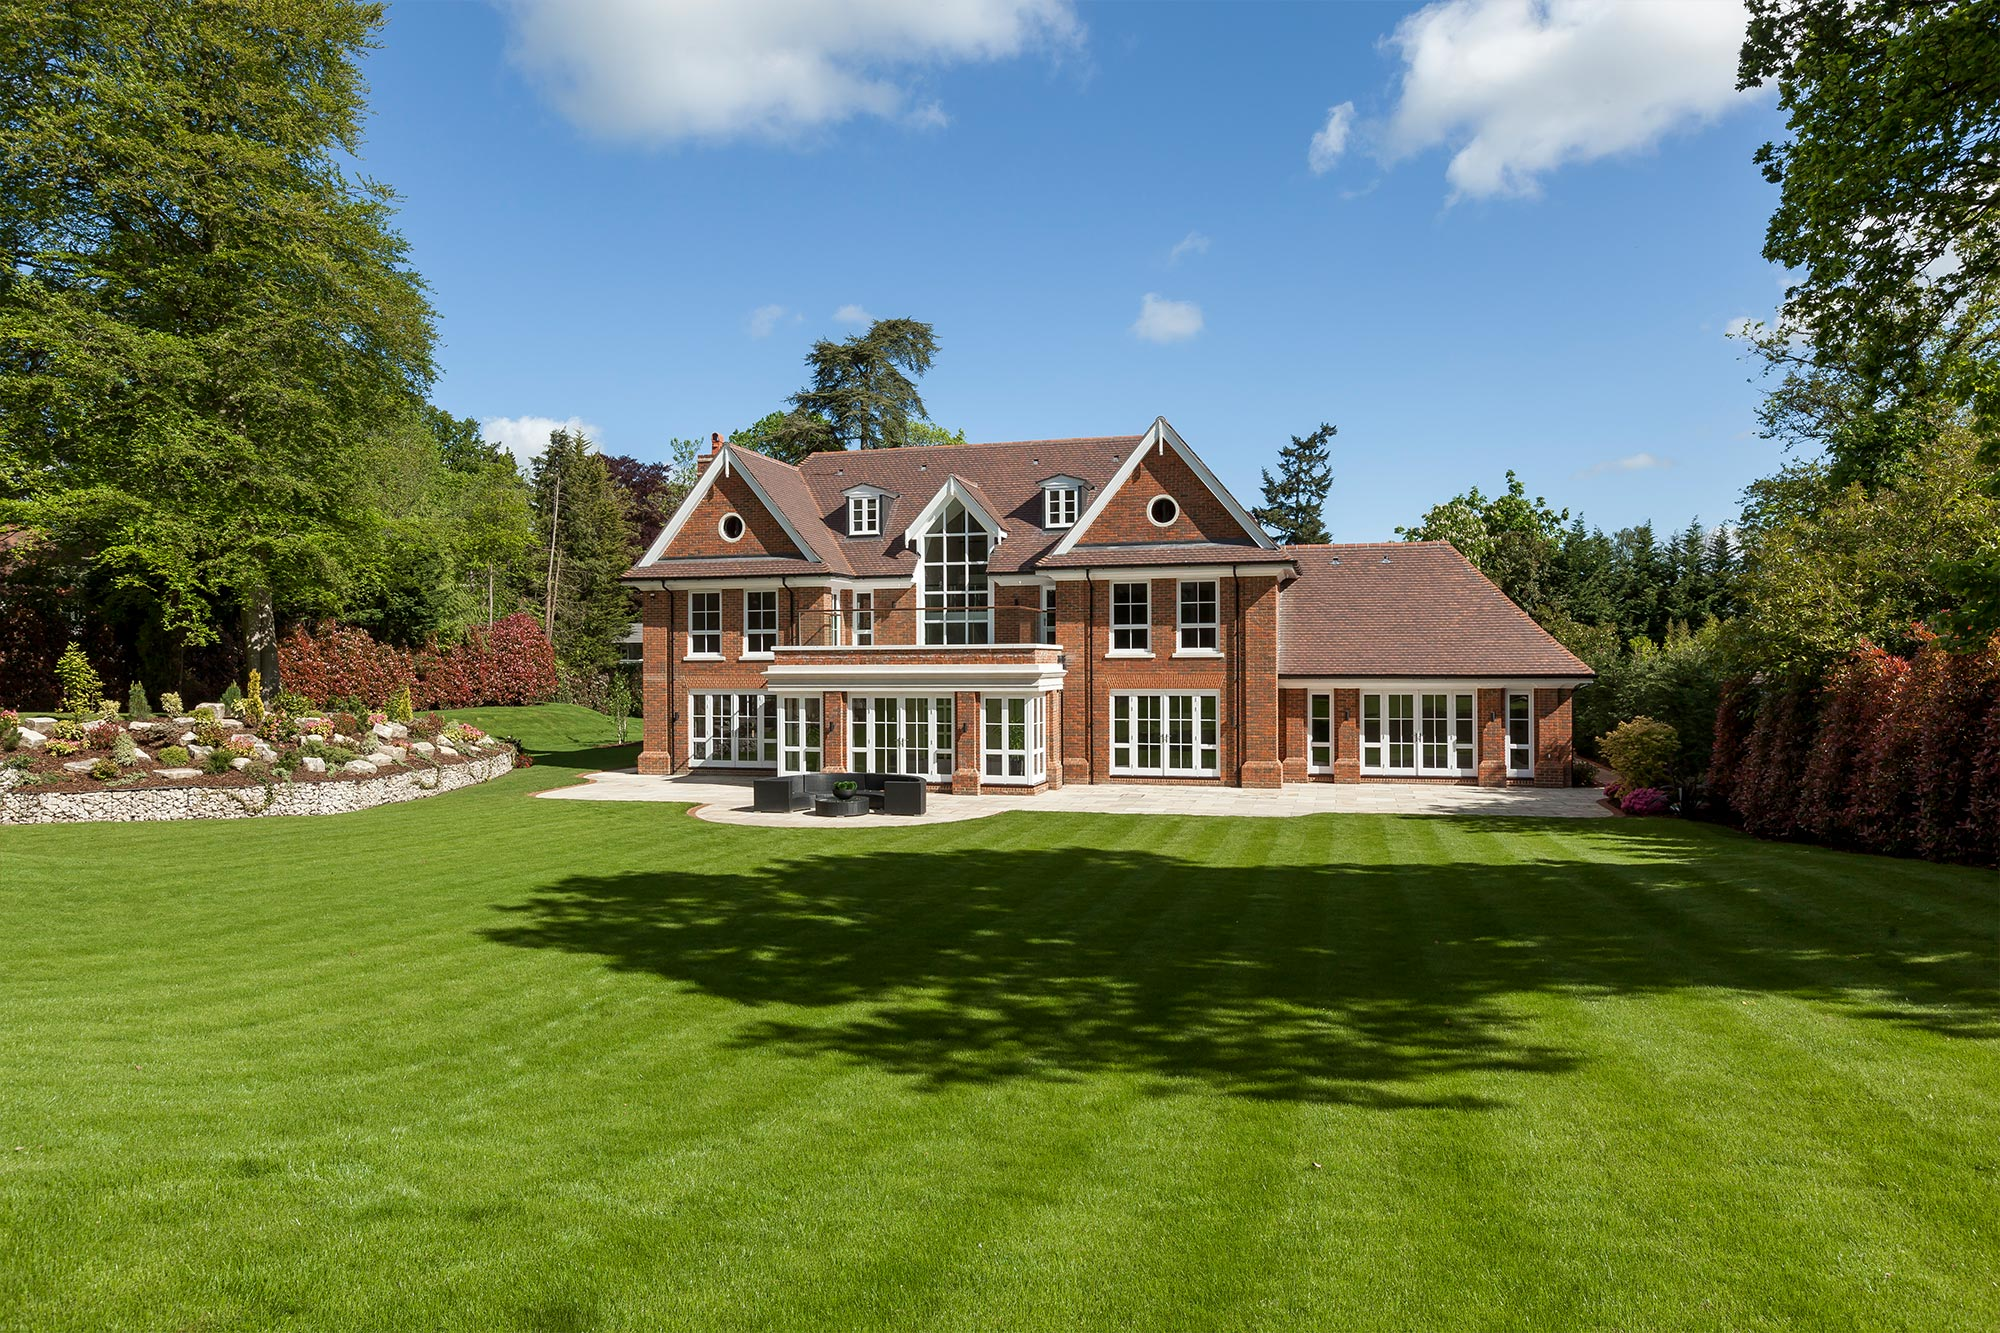 6 bed luxury house crown estate oxshott i octagon houses 5 million